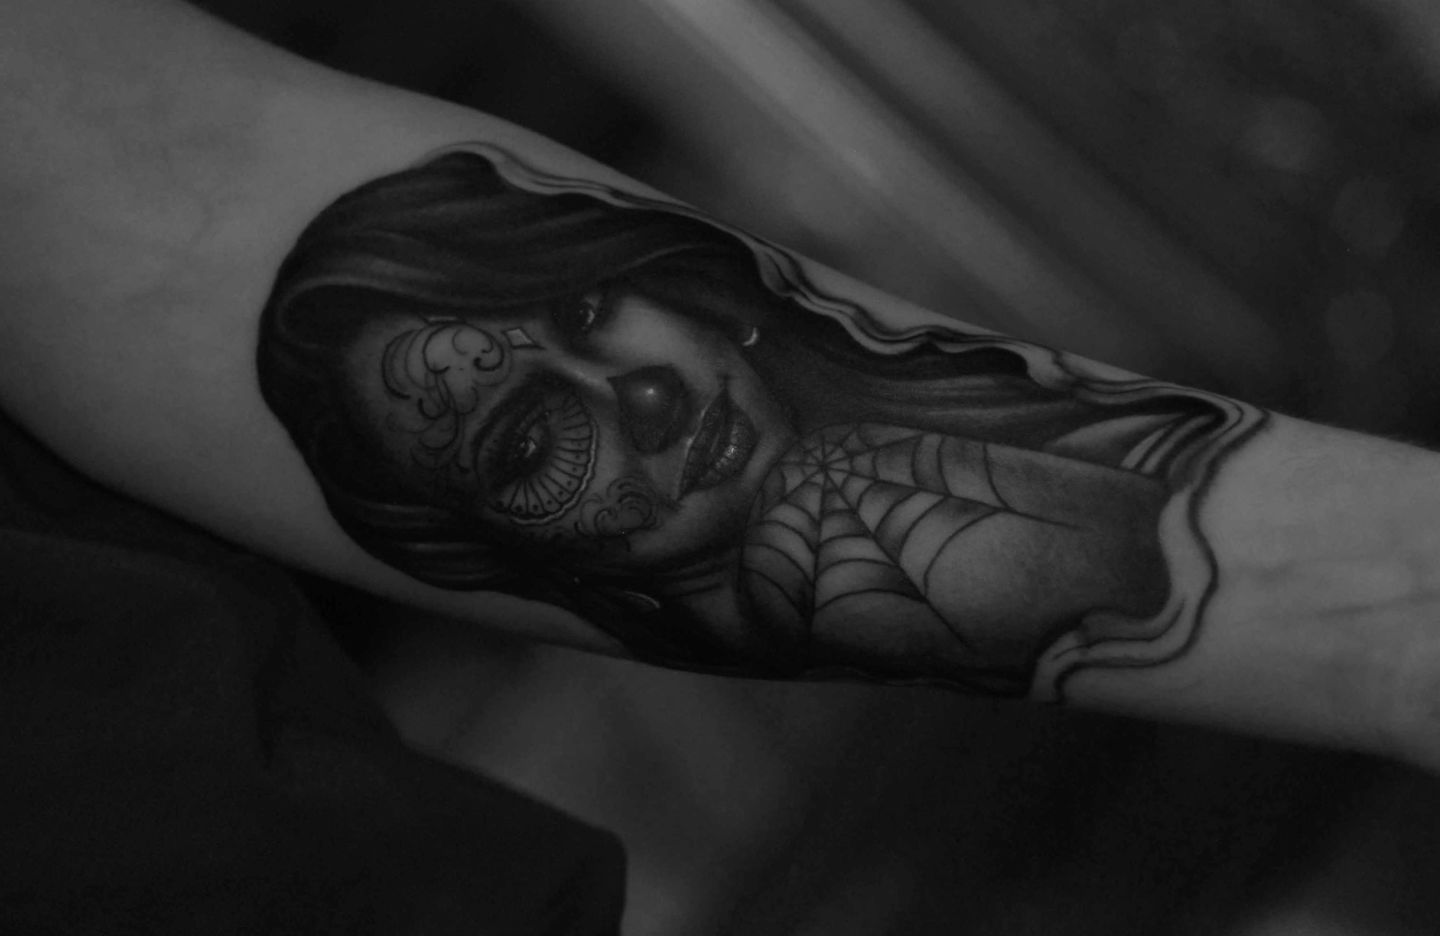 Day-of-the-dead-rosemary-mckevitt-tattoo-ireland